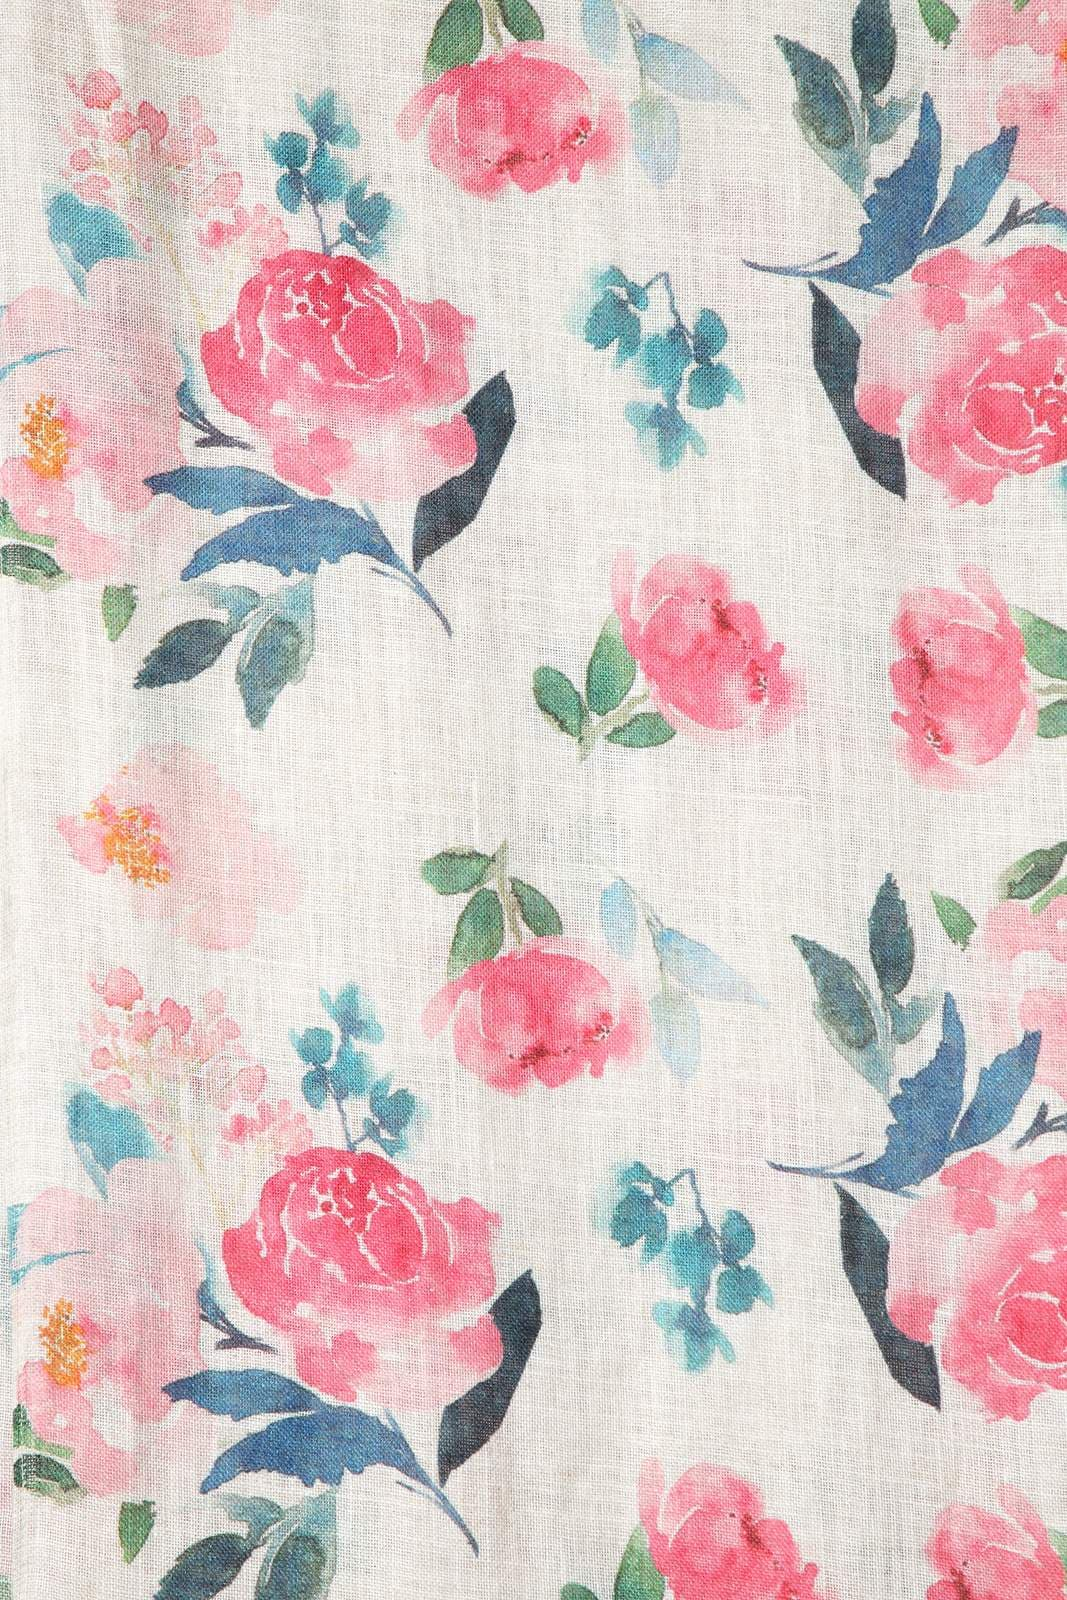 SCF 7713BF Pink Foral Printed Linen Scarf With Frayed Edges One Size - Pink (One Size,Pink)